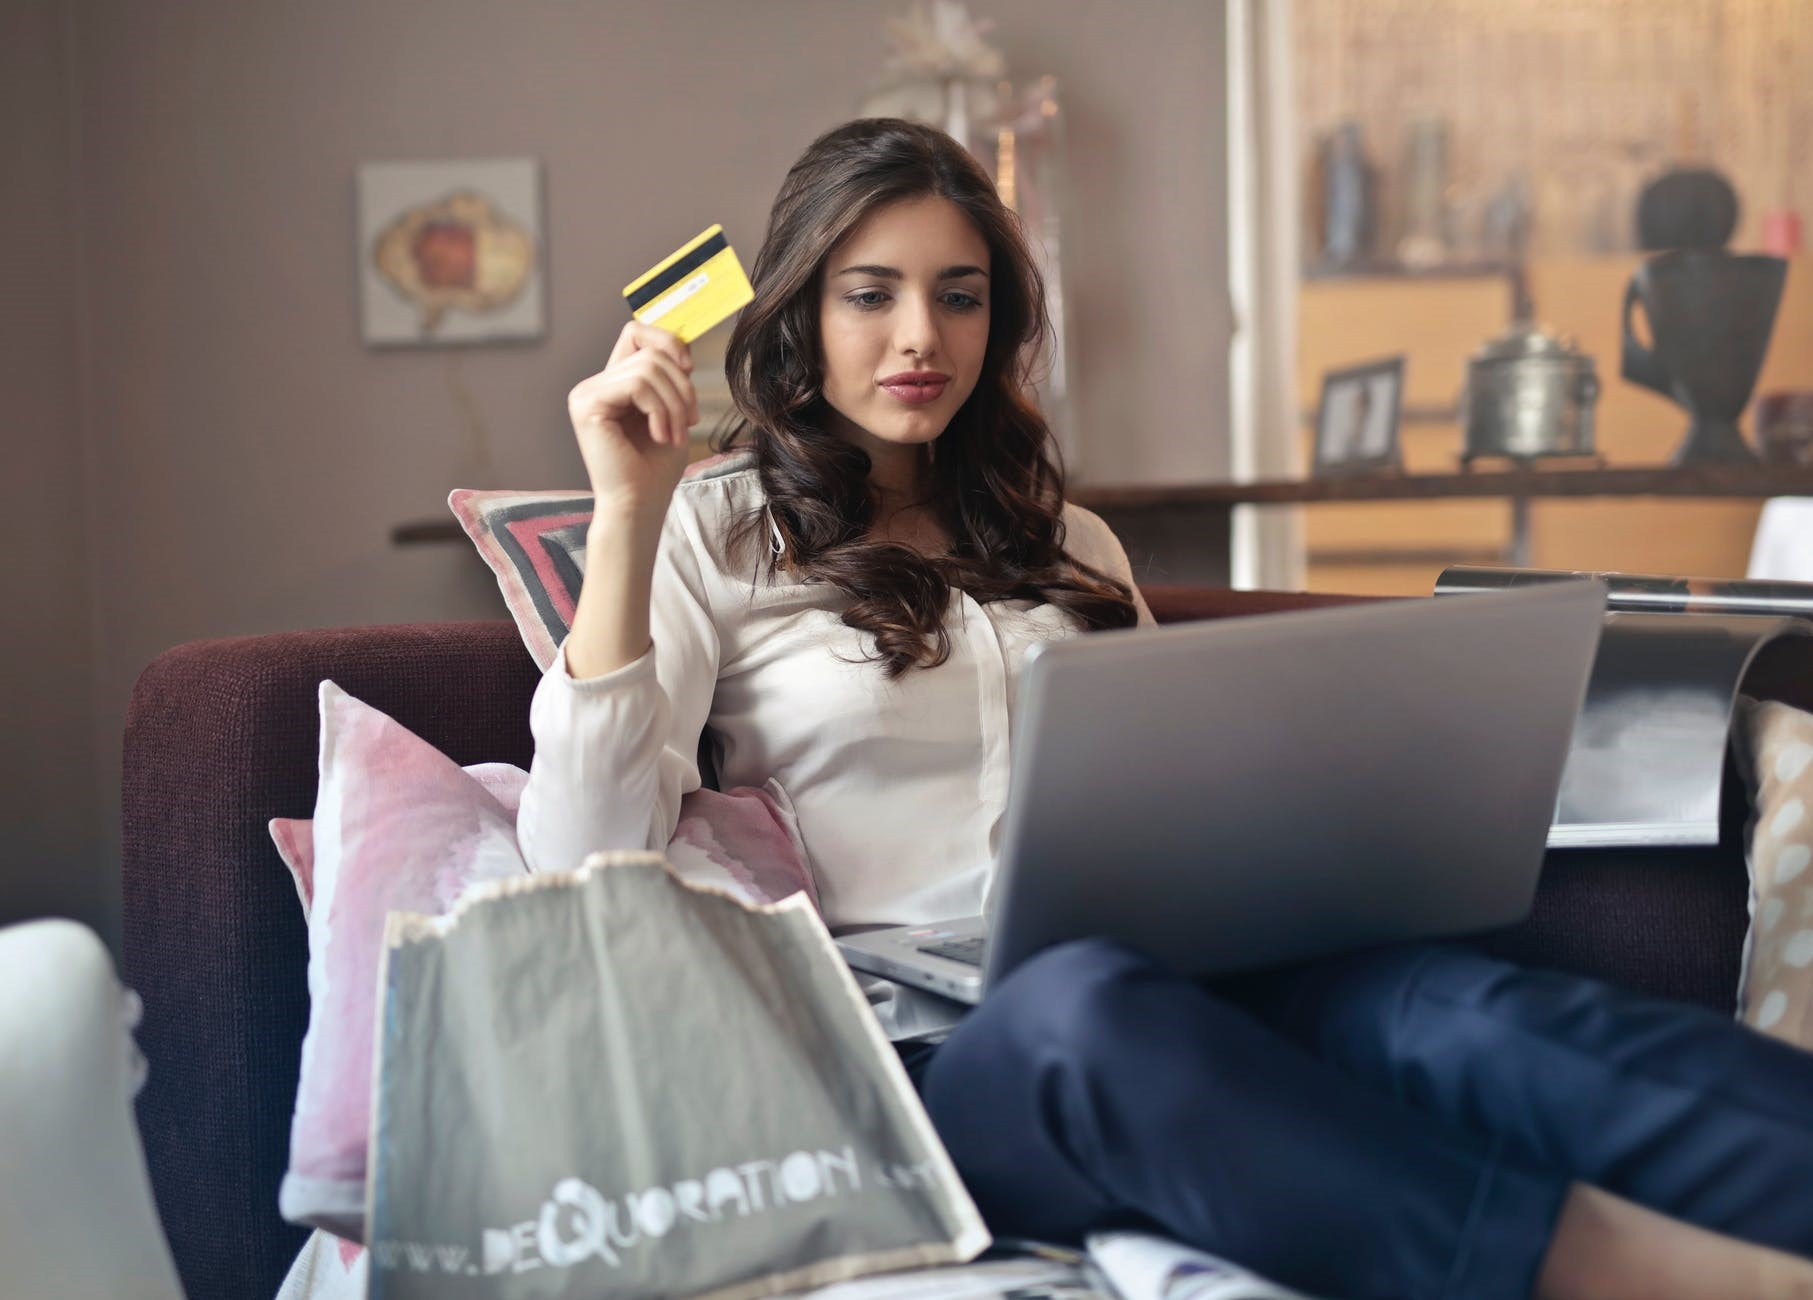 Black Friday Shopping Tips to Snag the Buyers